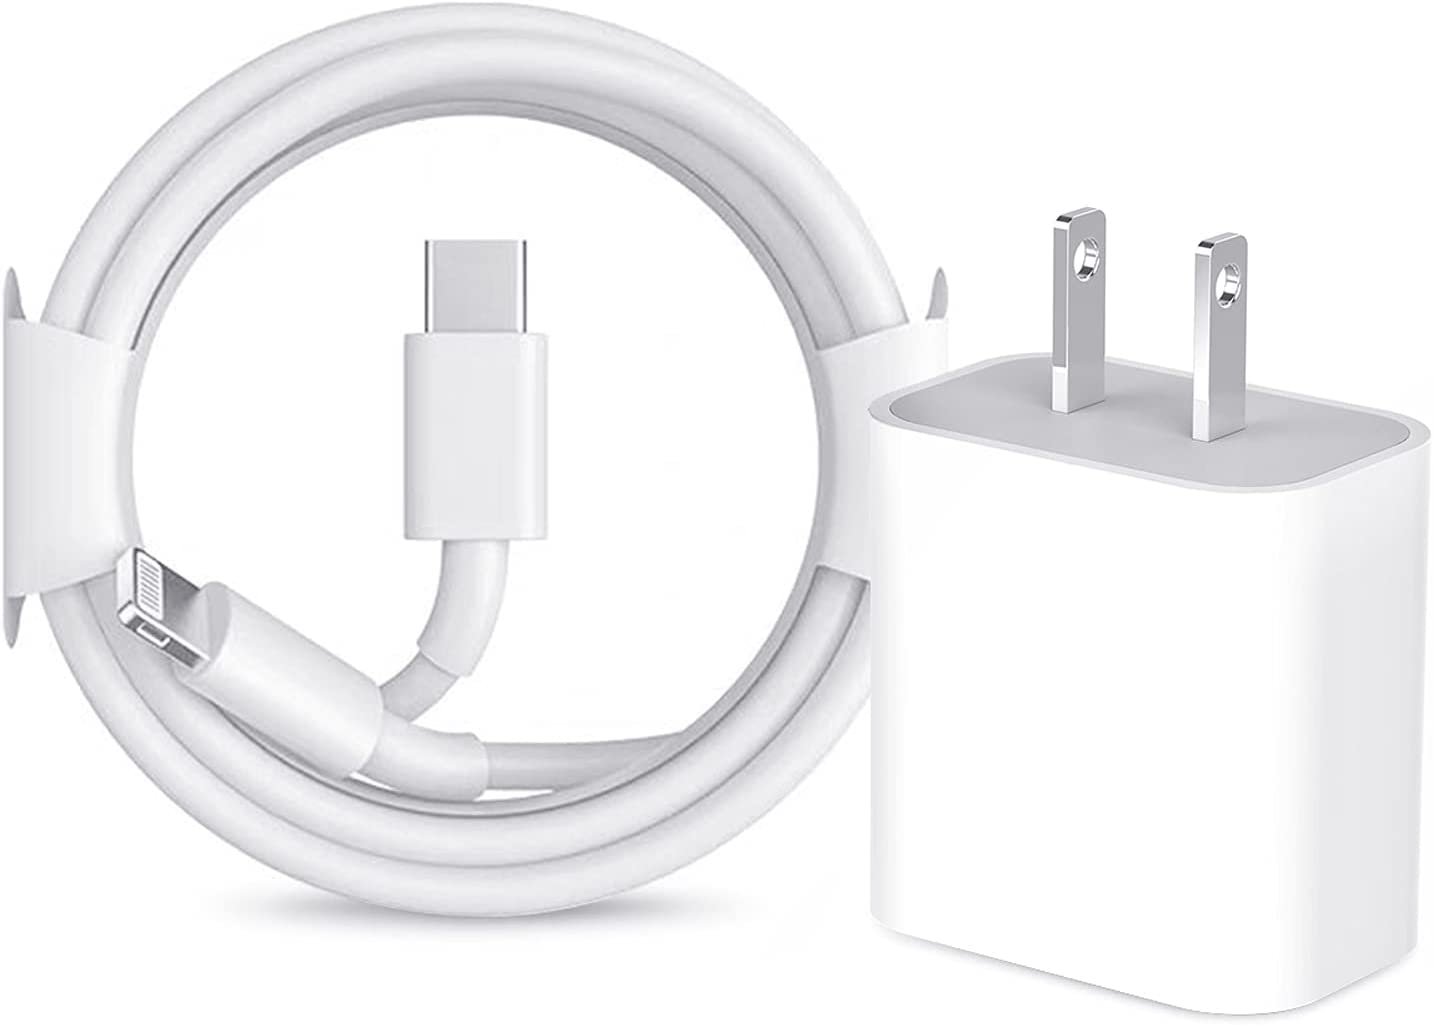 Long iPhone 12 Fast Charger, [Apple MFi Certified] 6FT USB C Charger 20W PD Type C Power Delivery Wall Plug Adapter with Lightning Cable for iPhone 12/12 Mini/Pro/Pro Max/11/Pro Max/Xs Max/XR/X/iPad